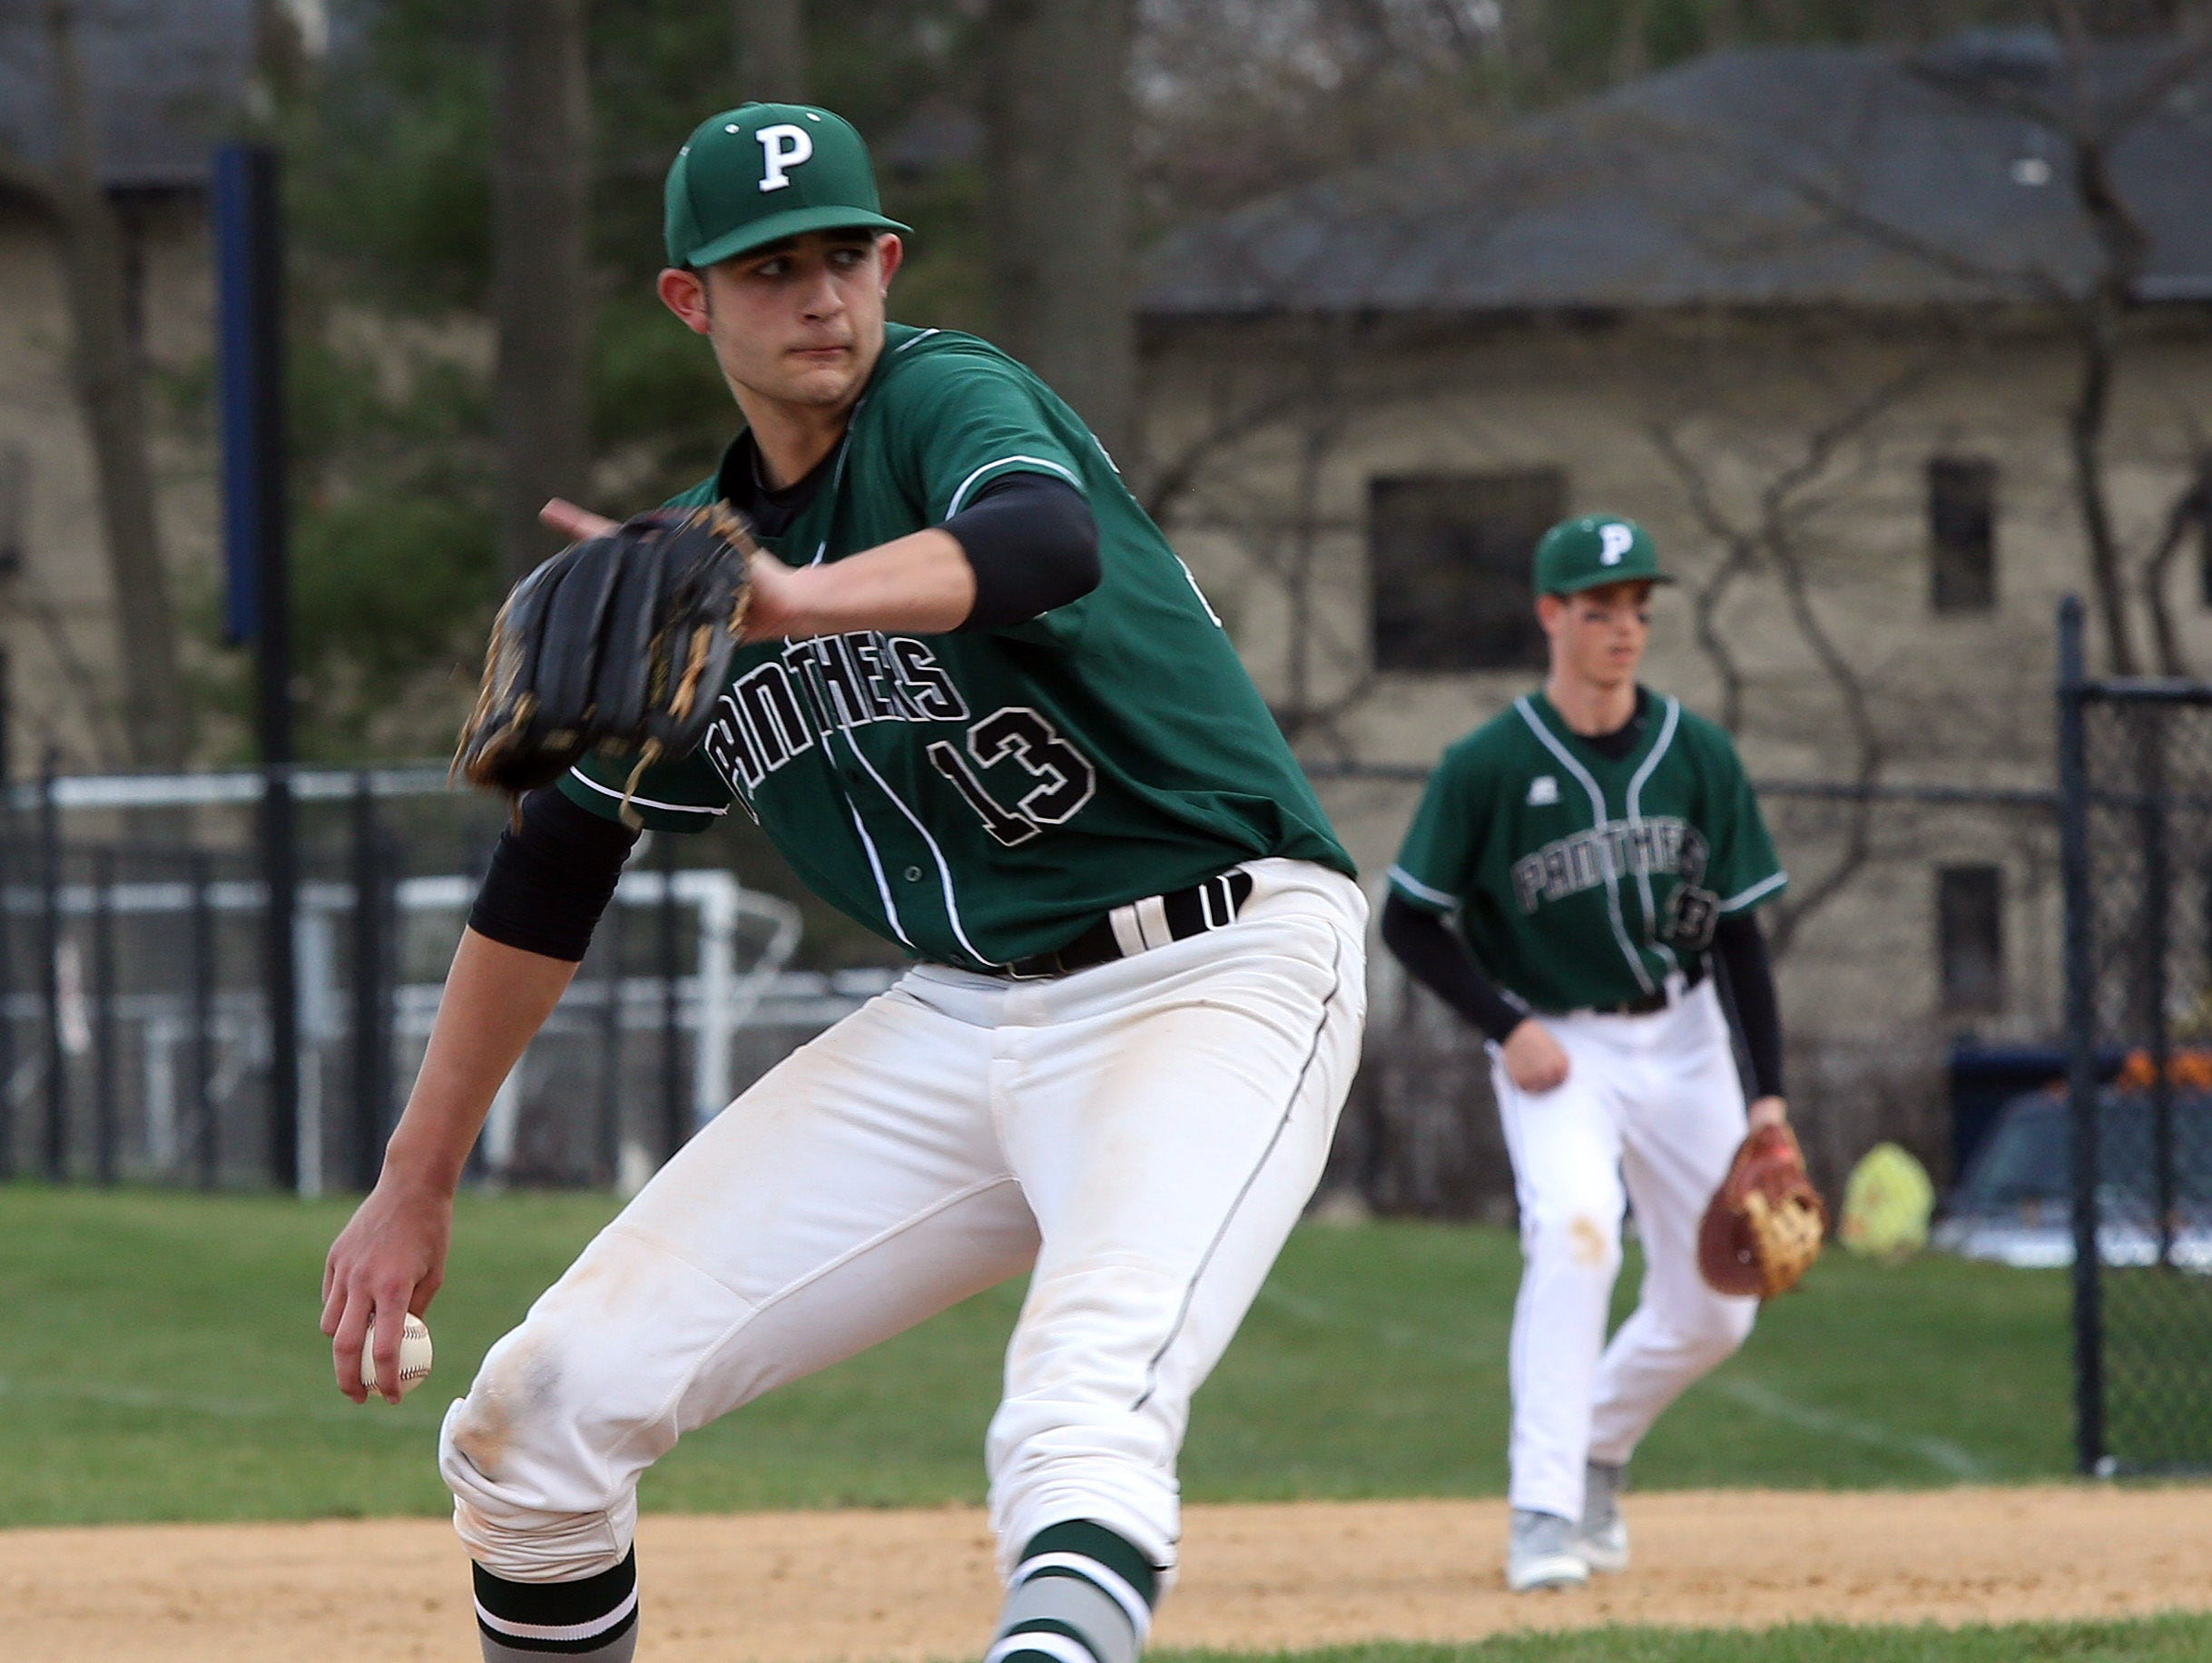 Pleasantville's Drew Marino pitches against Eastchester during baseball game at Eastchester High School on March 31, 2016. Eastchester defeated Pleasantville 2-1.